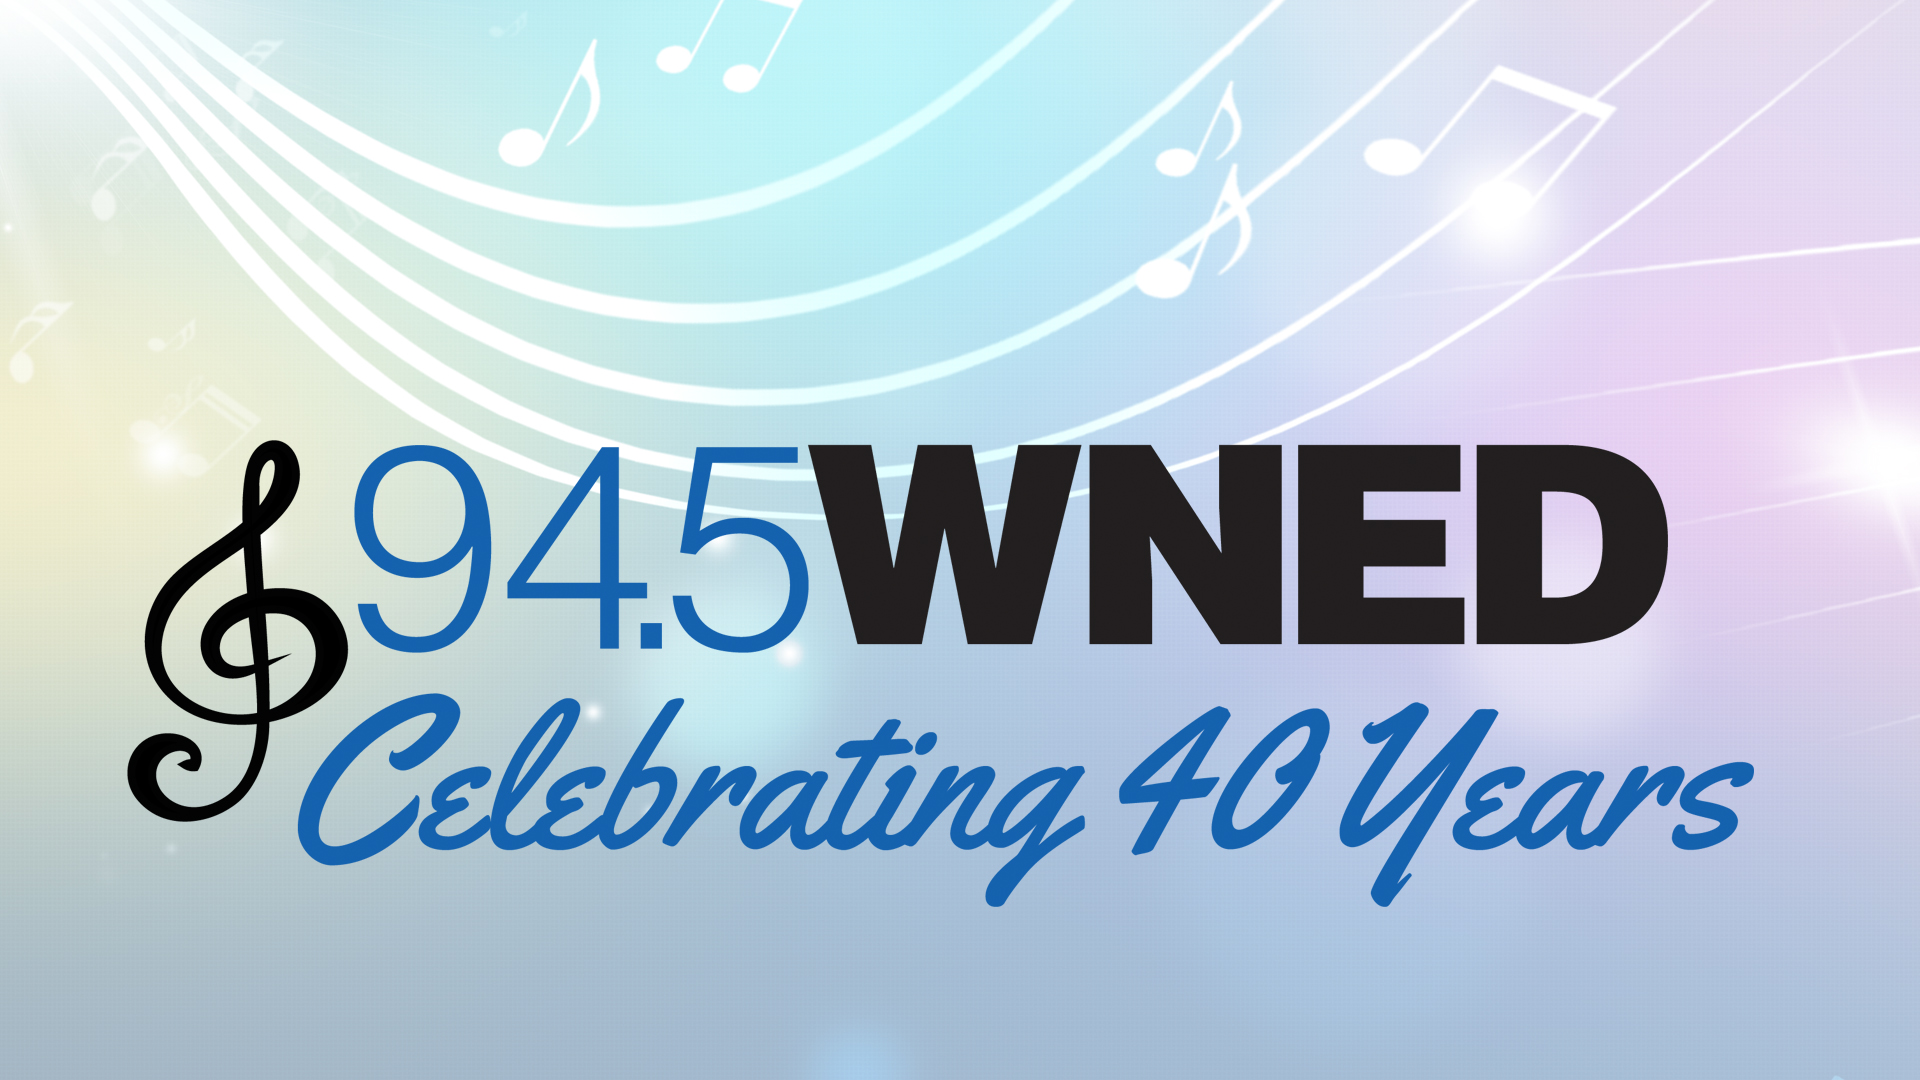 <b>Happy Anniversary Classical 94.5 WNED!</b>